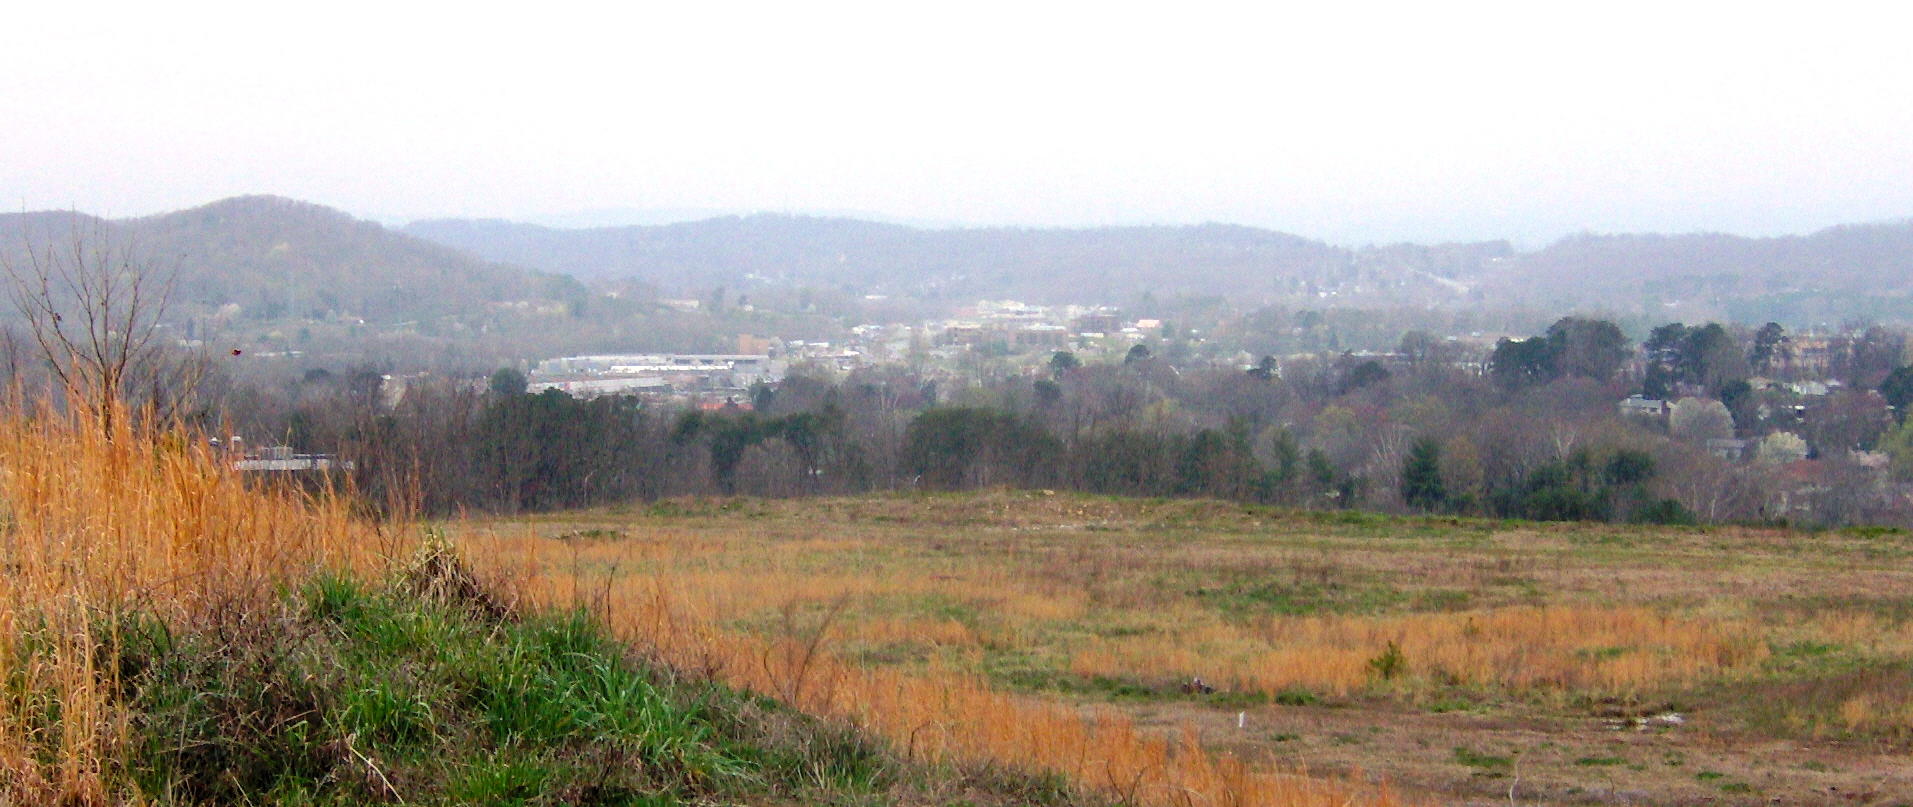 tennessee ridge 17 homes for sale in tennessee ridge, tn browse photos, see new properties, get open house info, and research neighborhoods on trulia.